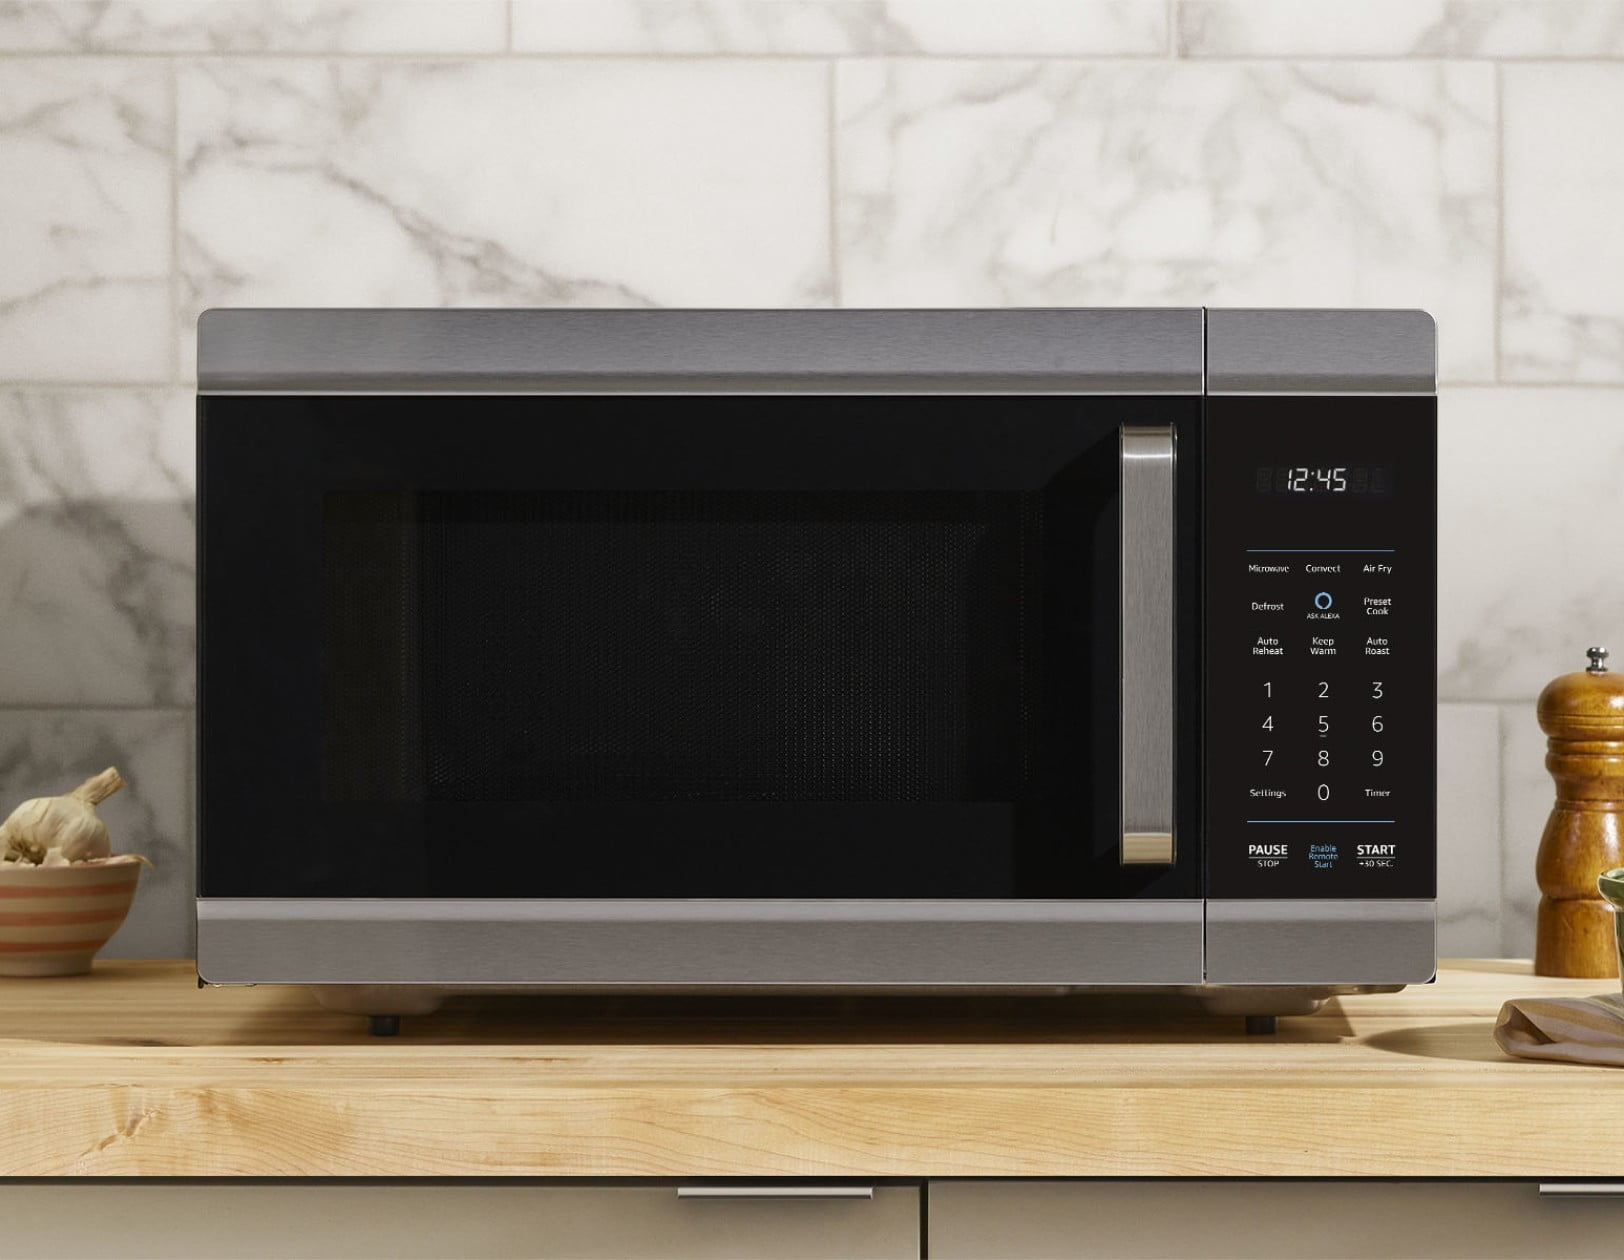 Amazon's new smart oven can air-fry, bake, and microwave your meals